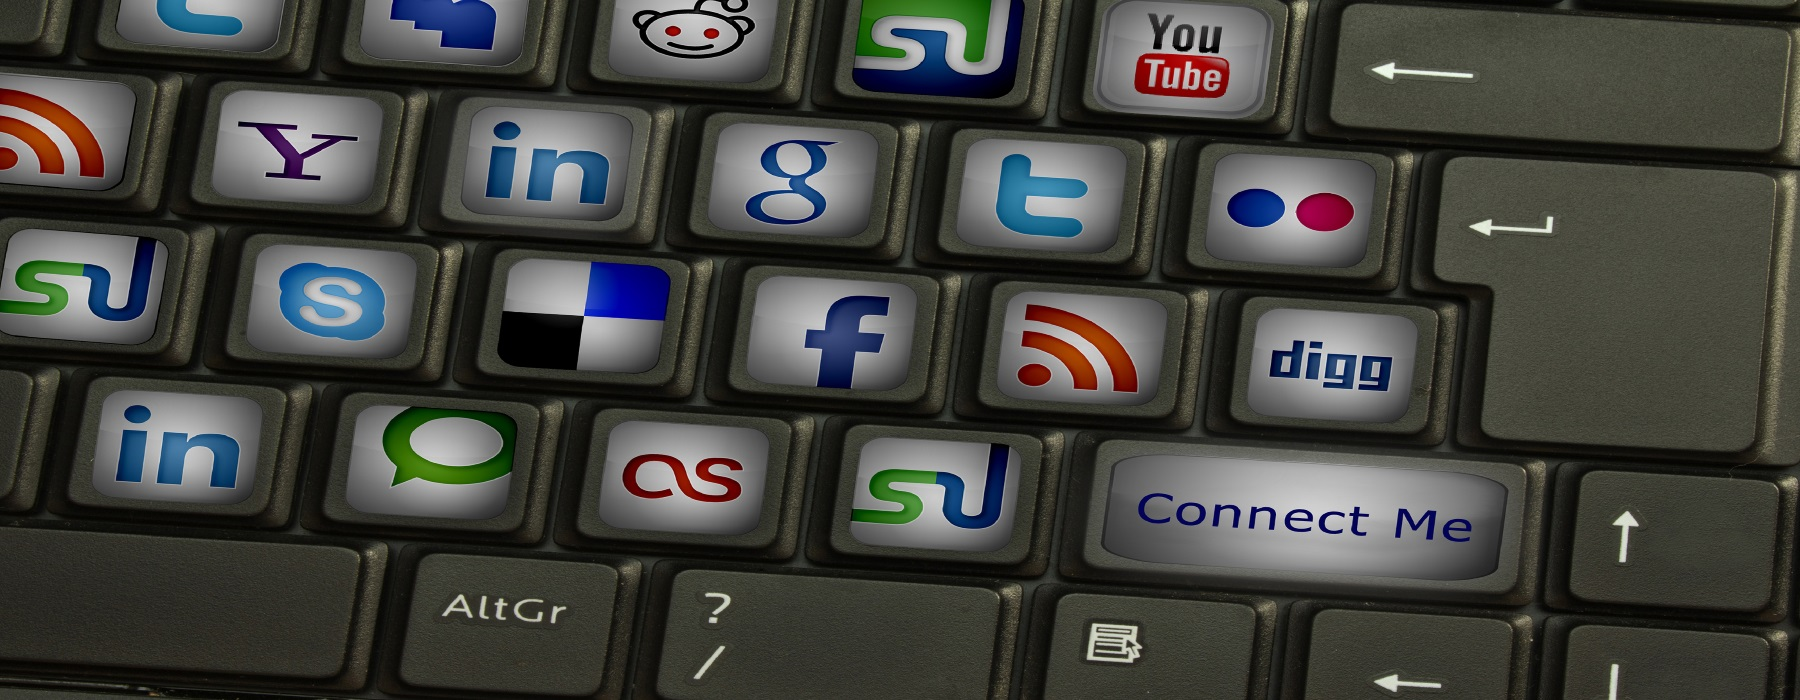 social-keyboard-1 Social Network Best Practices for Sharing